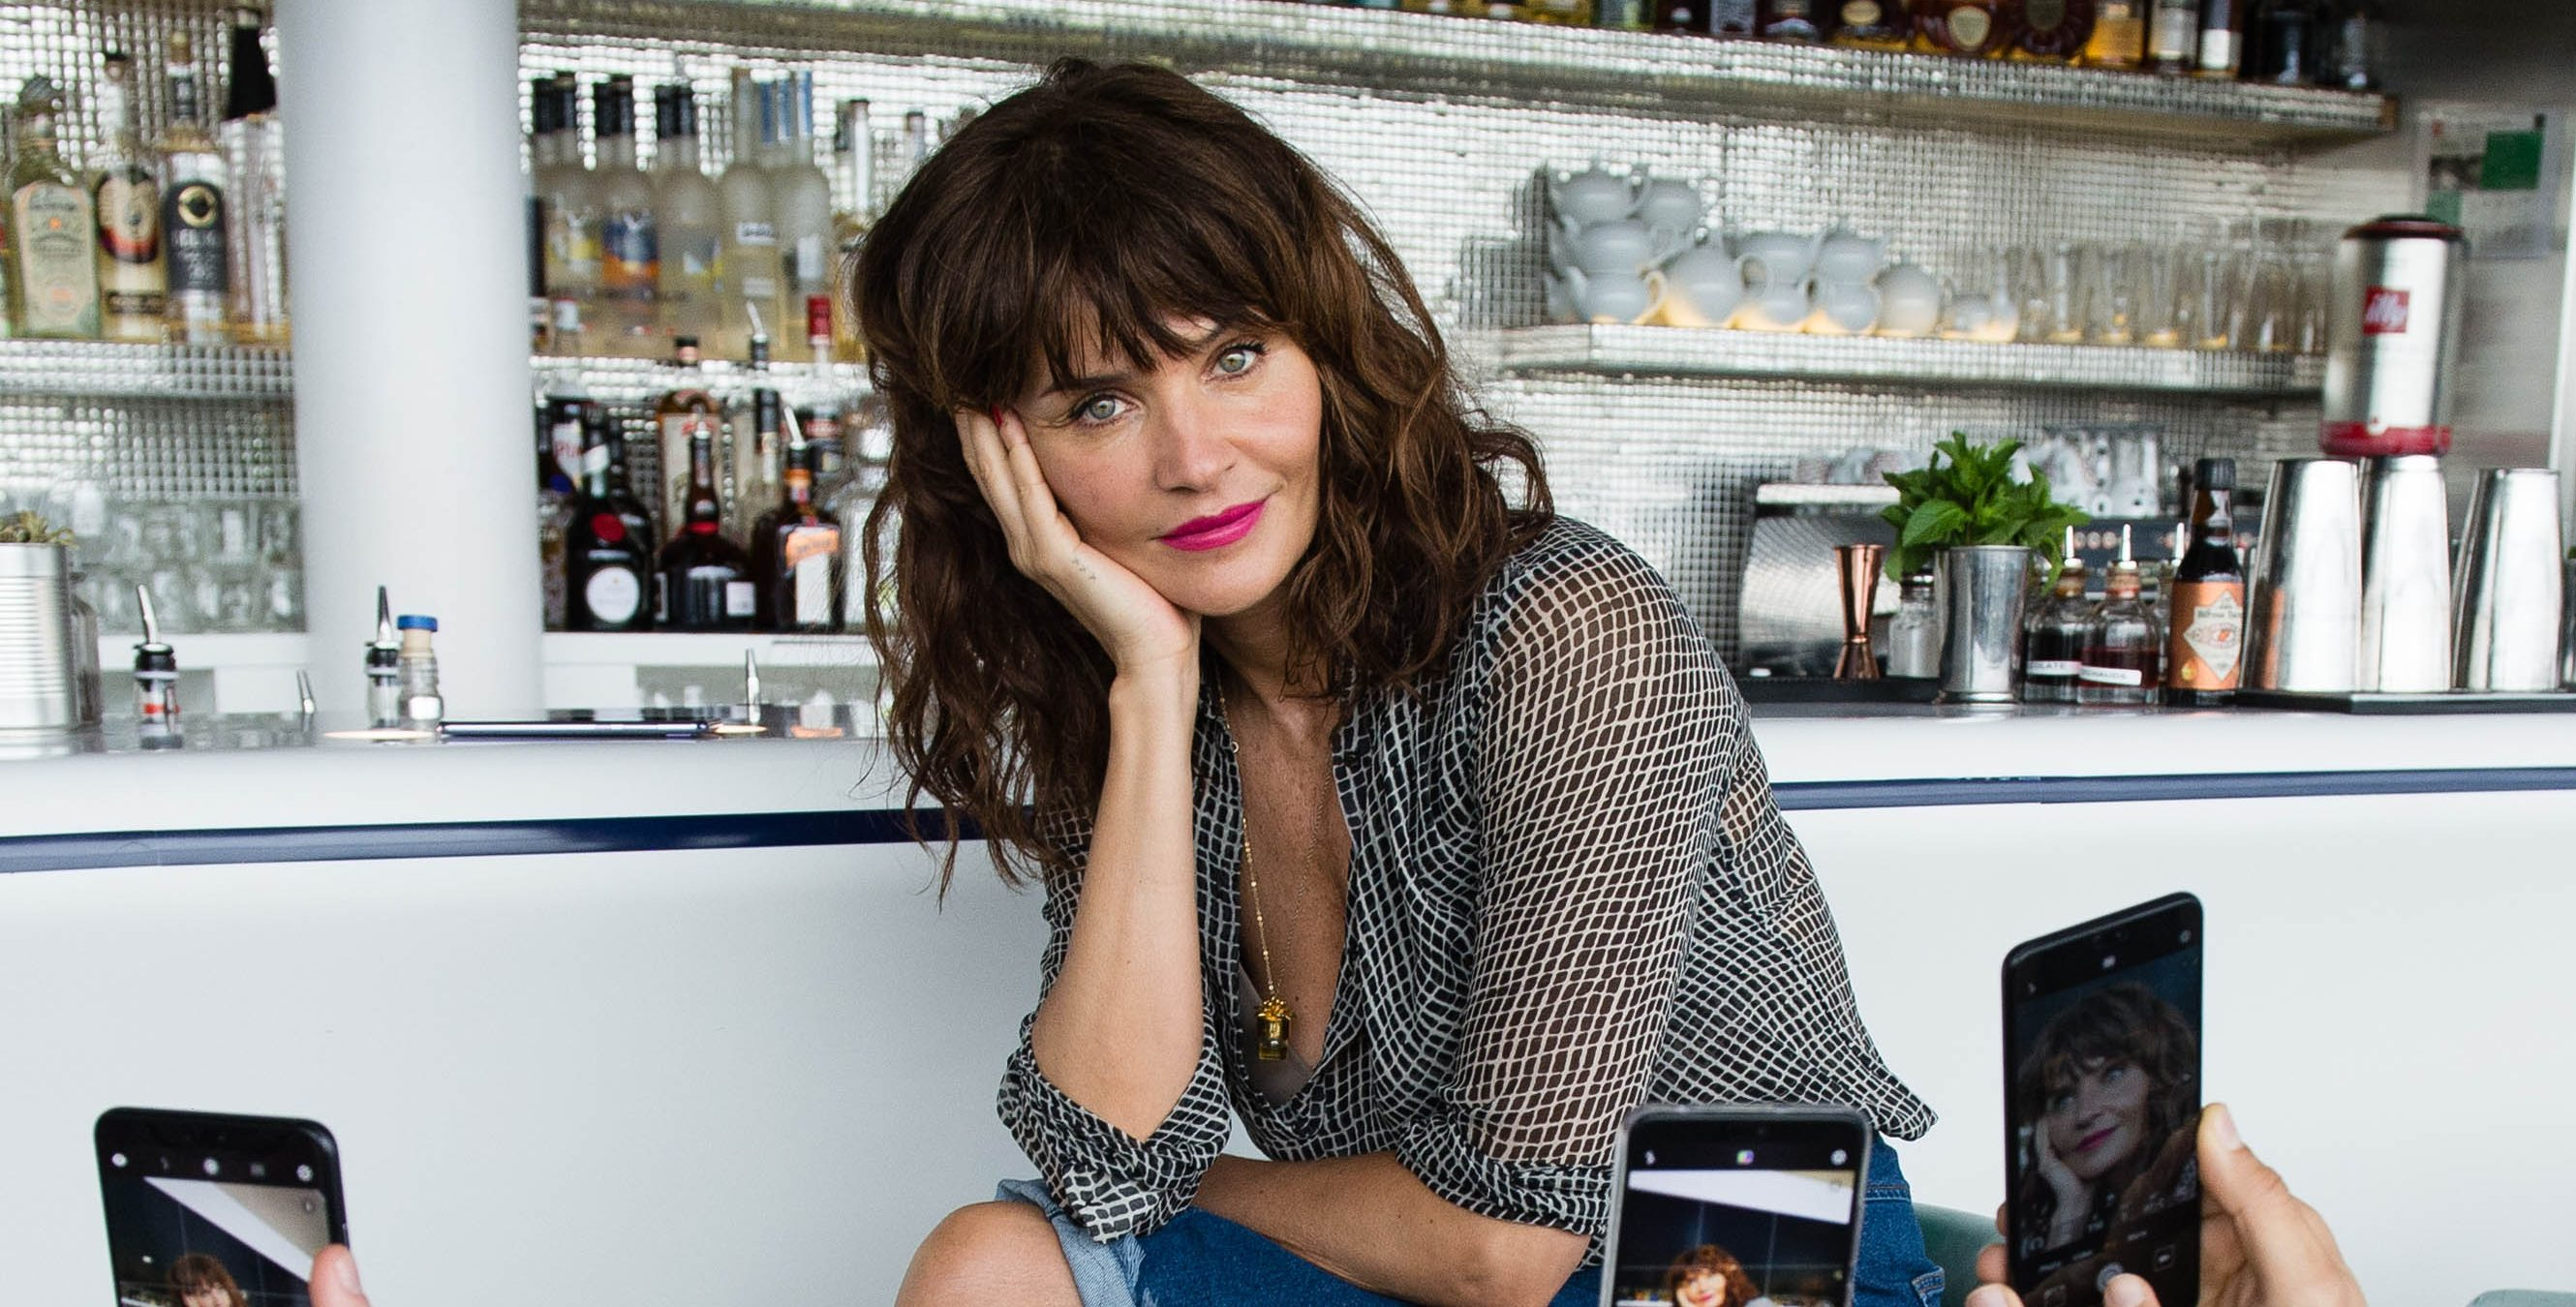 Helena Christensen confesses she doesn't want son with Norman Reedus to be a supermodel